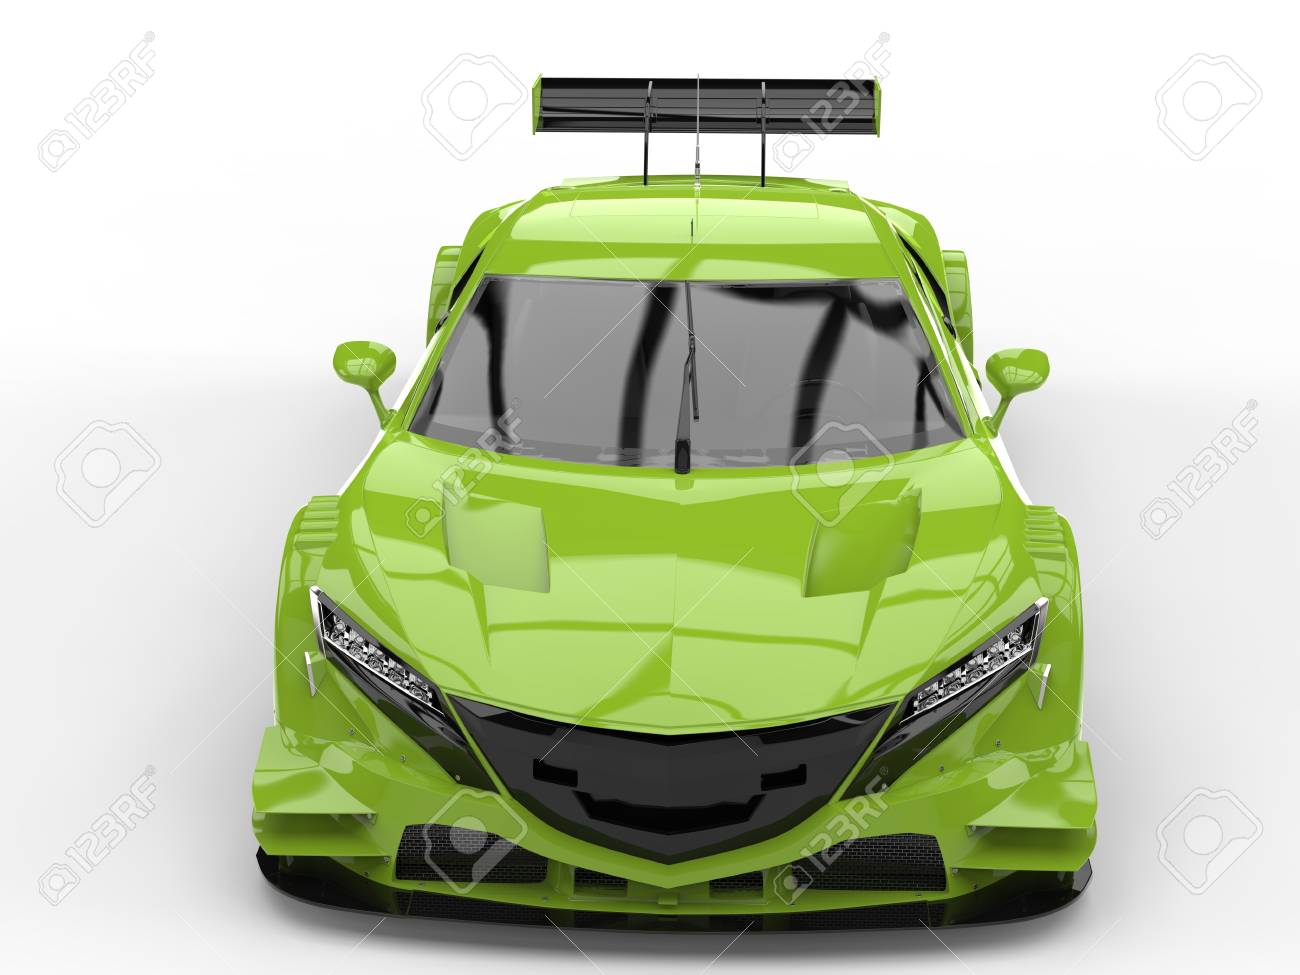 Electric Lime Concept Sports Car   Top Down Front View Stock Photo    80618313